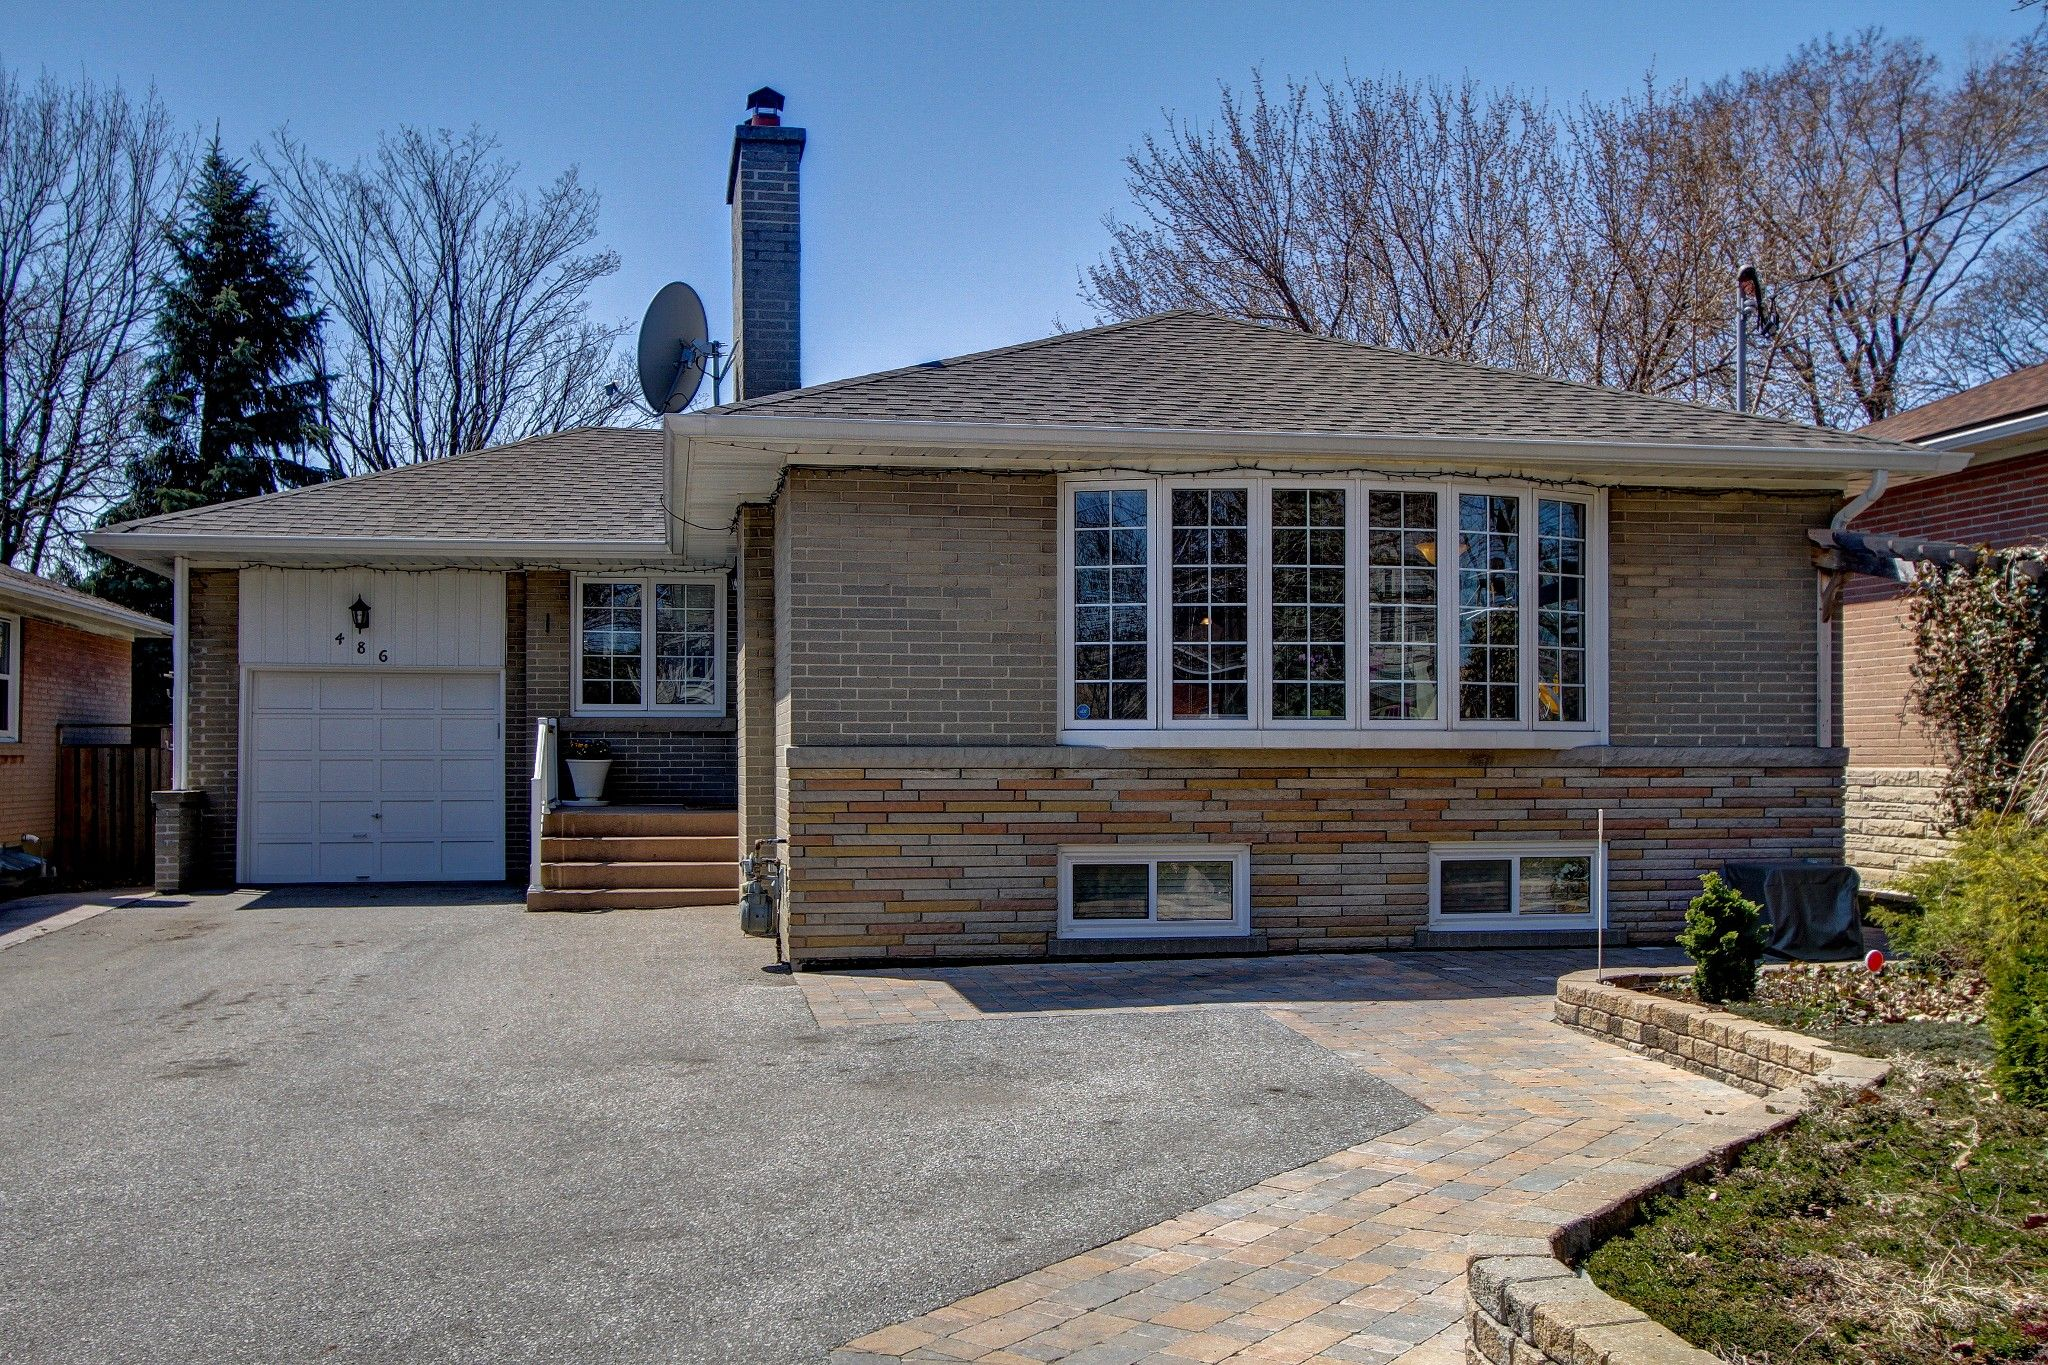 Main Photo: 426 Martin Grove Road in Toronto: Eringate-Centennial-West Deane Freehold for sale (Toronto W08)  : MLS®# W2617825